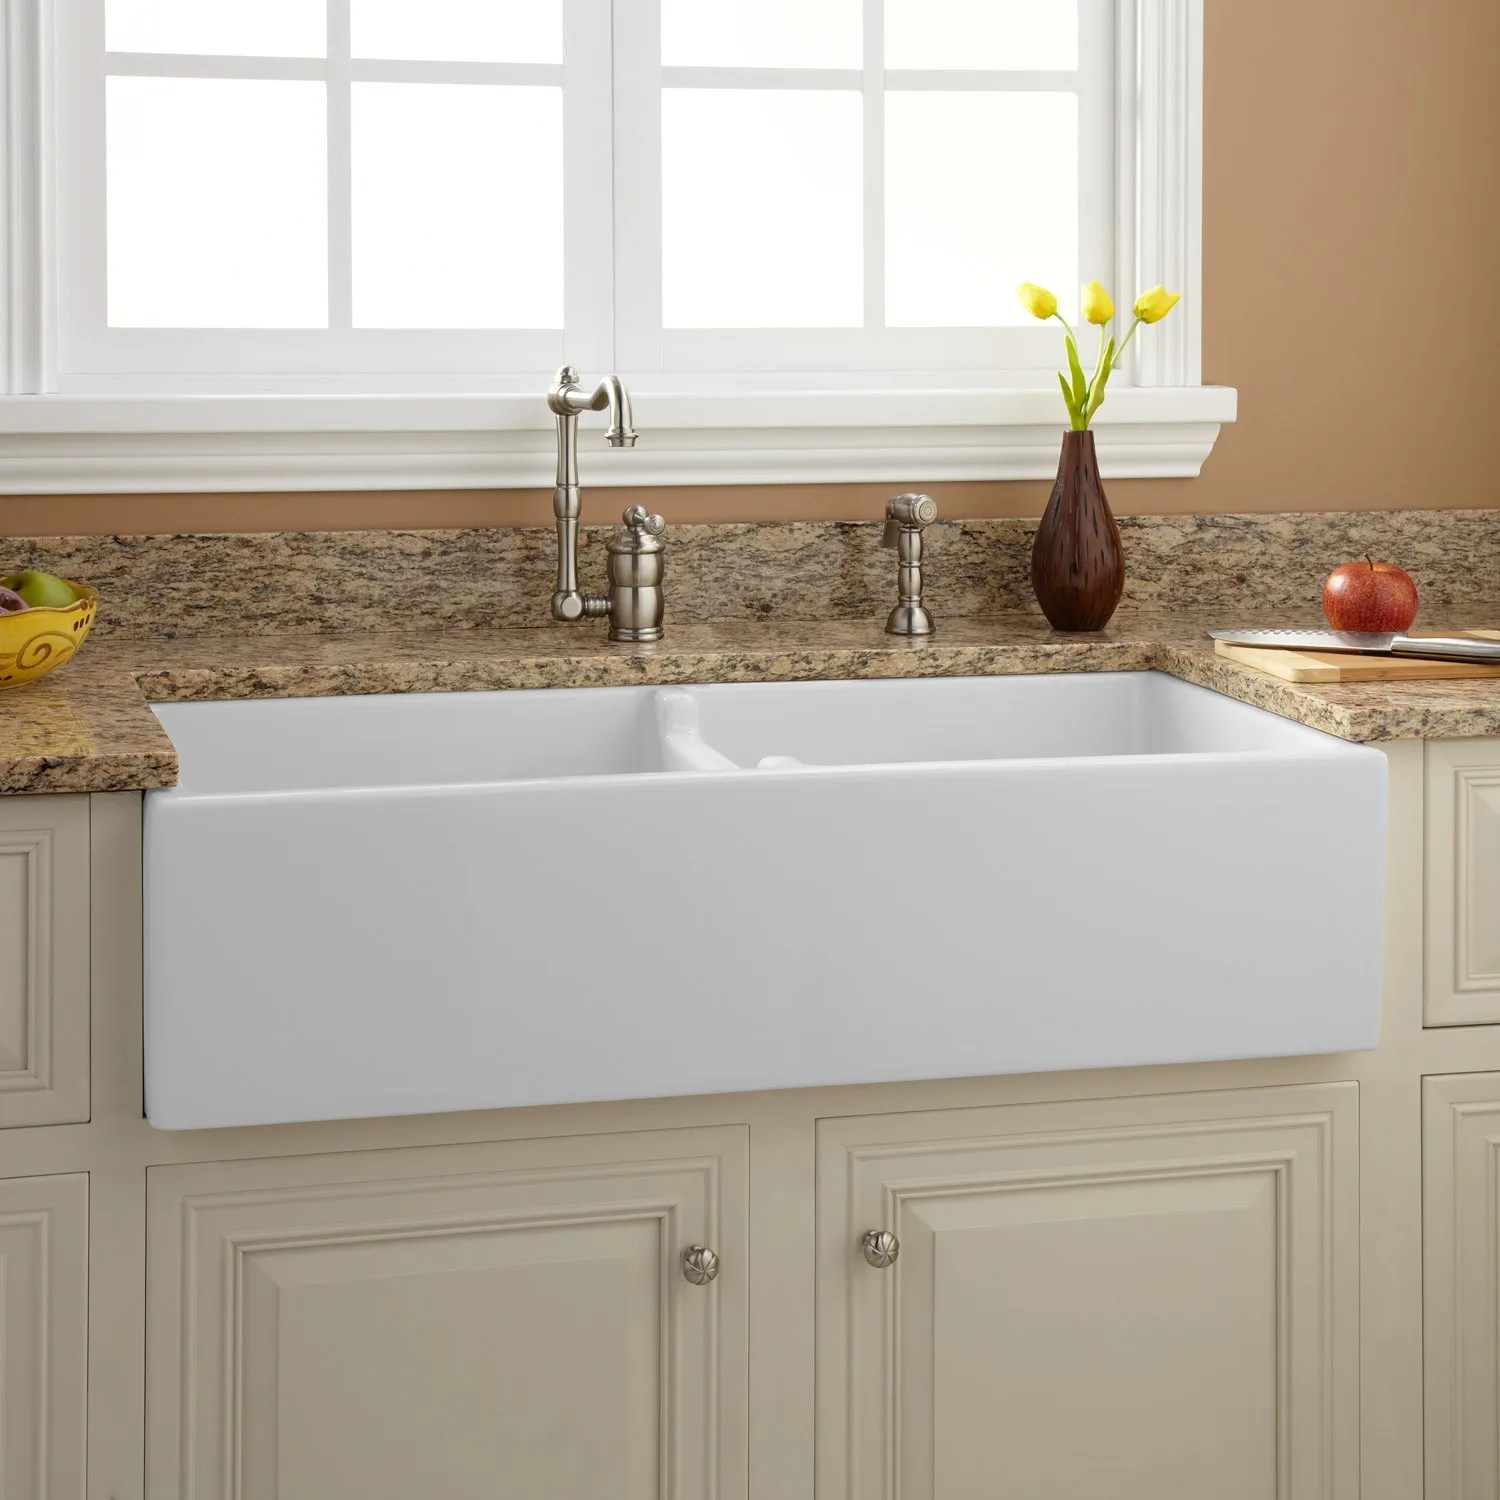 farmers kitchen sink cost of building a island 39 quot risinger double bowl fireclay farmhouse white